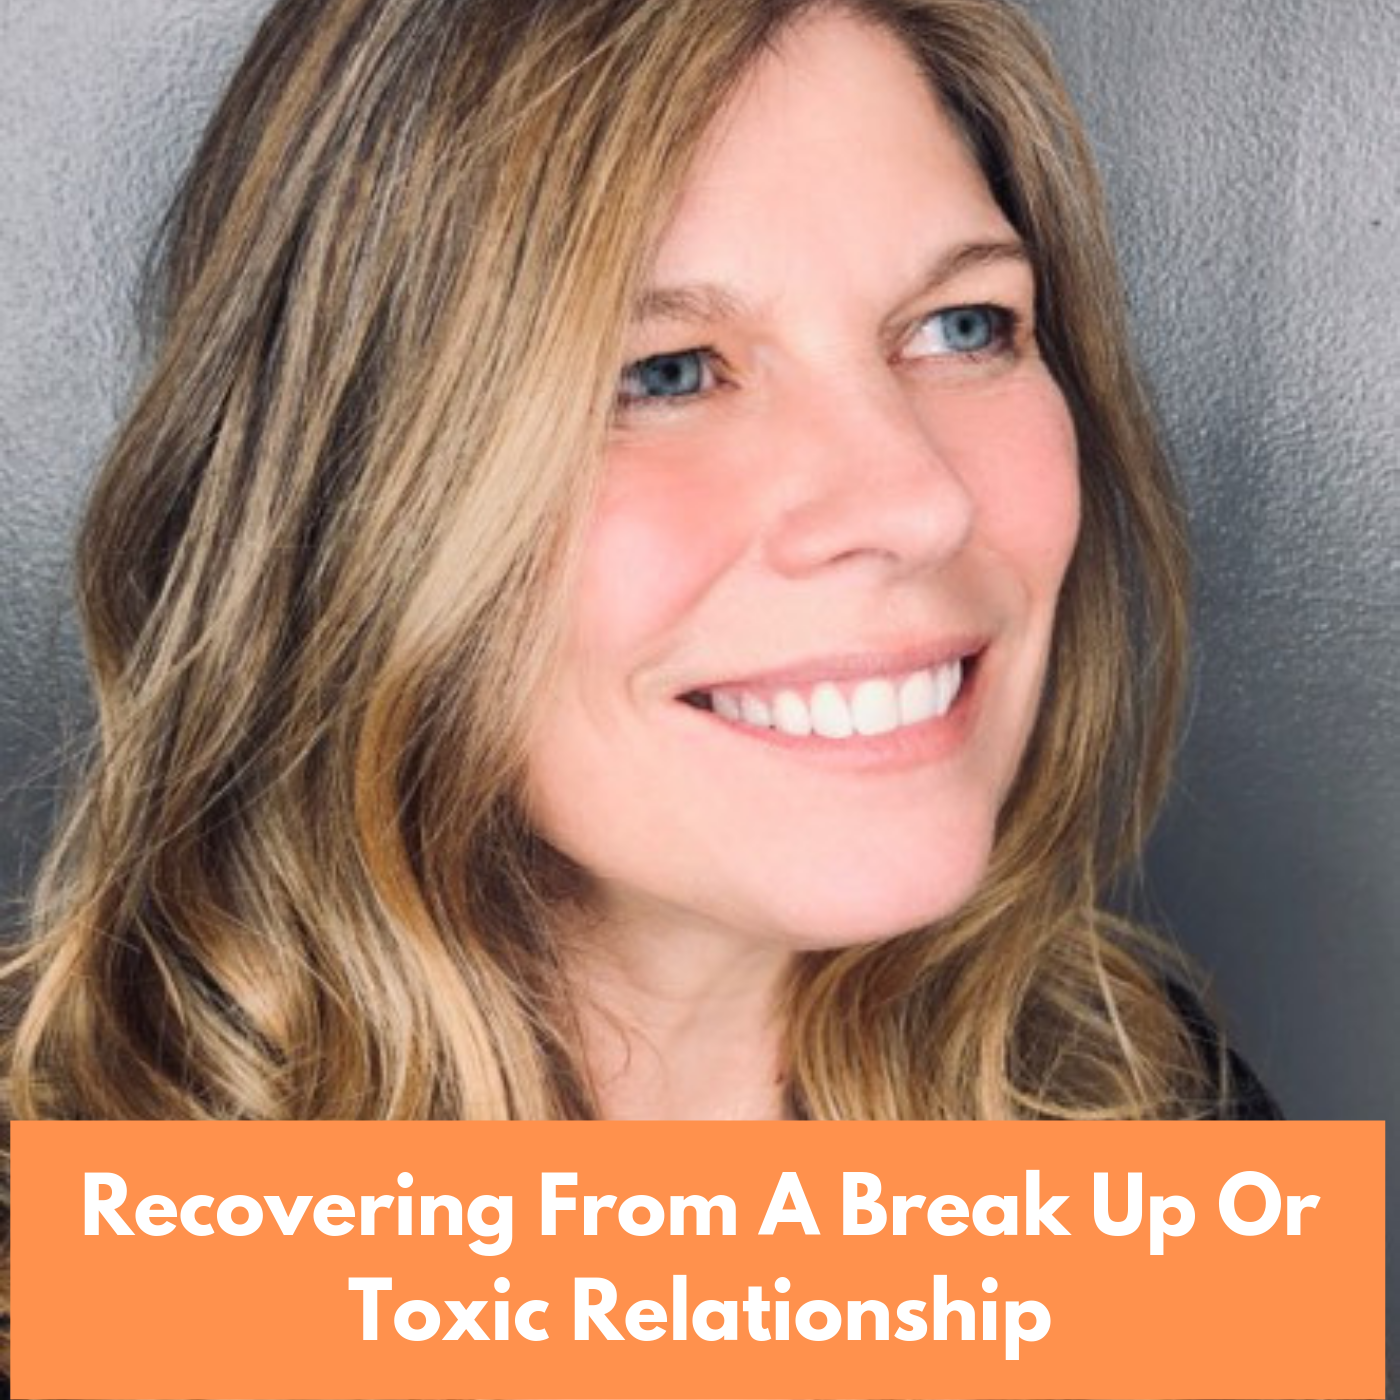 Recovering From A Break Up Or Toxic Relationship